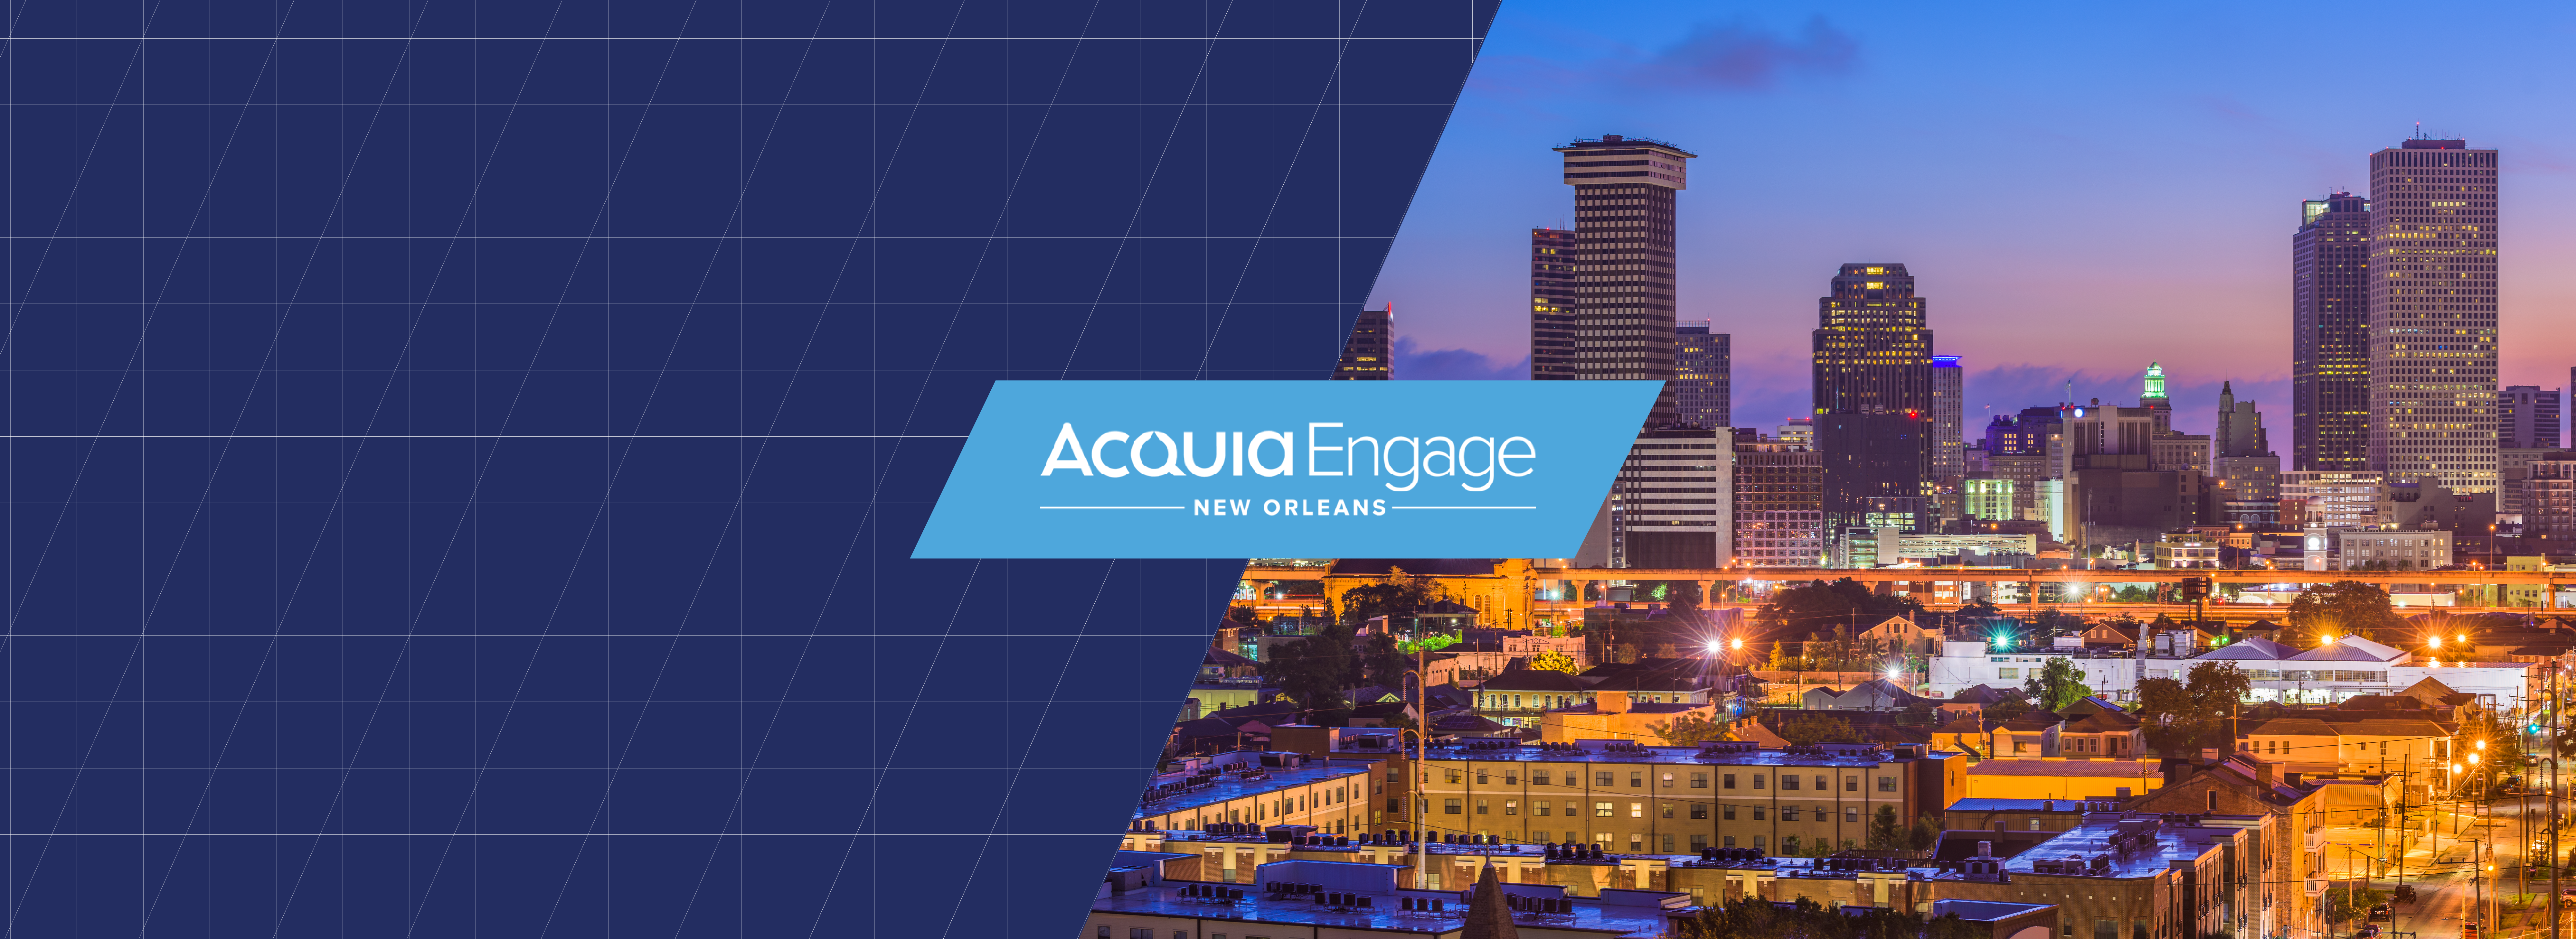 Acquia Engage NOLA Header